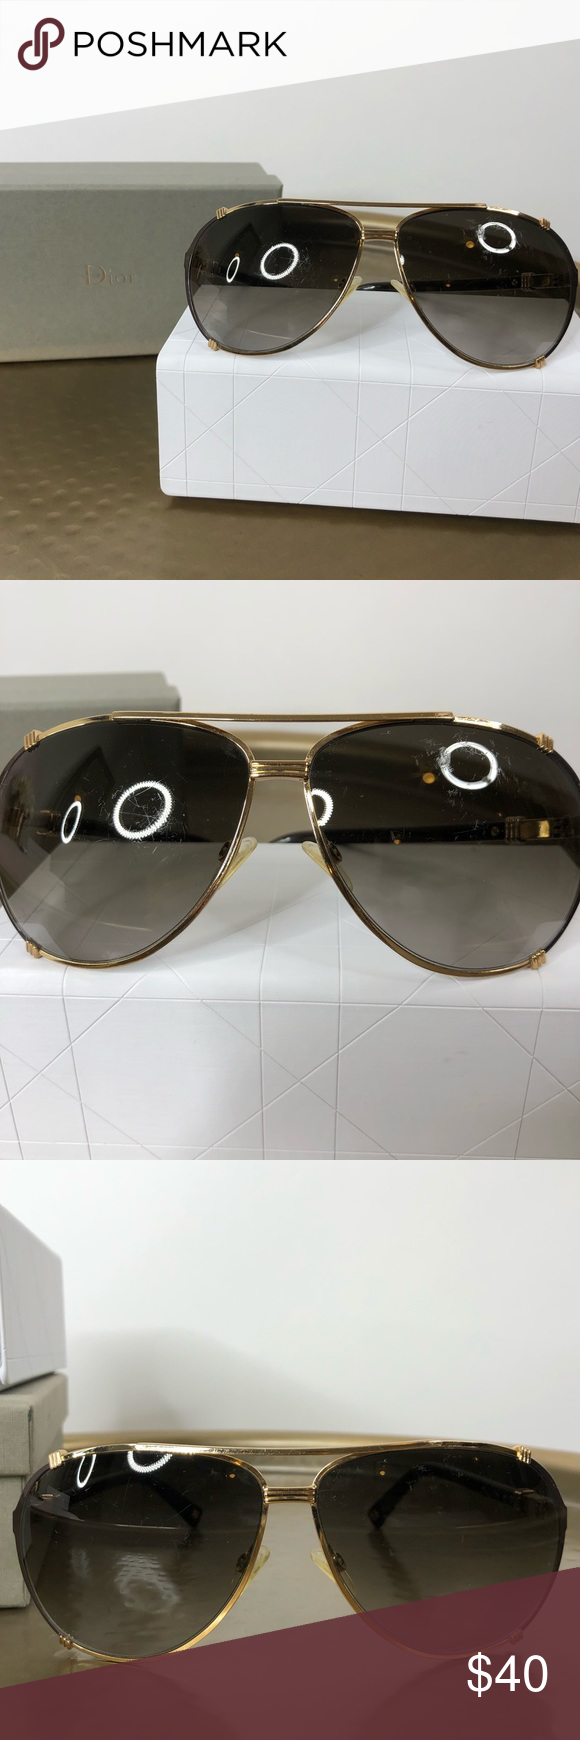 46db4614f89e Dior Chicago 2 Strauss Aviators Dior Chicago 2 Strauss Aviator Sunglasses  in Brown Gold Condition